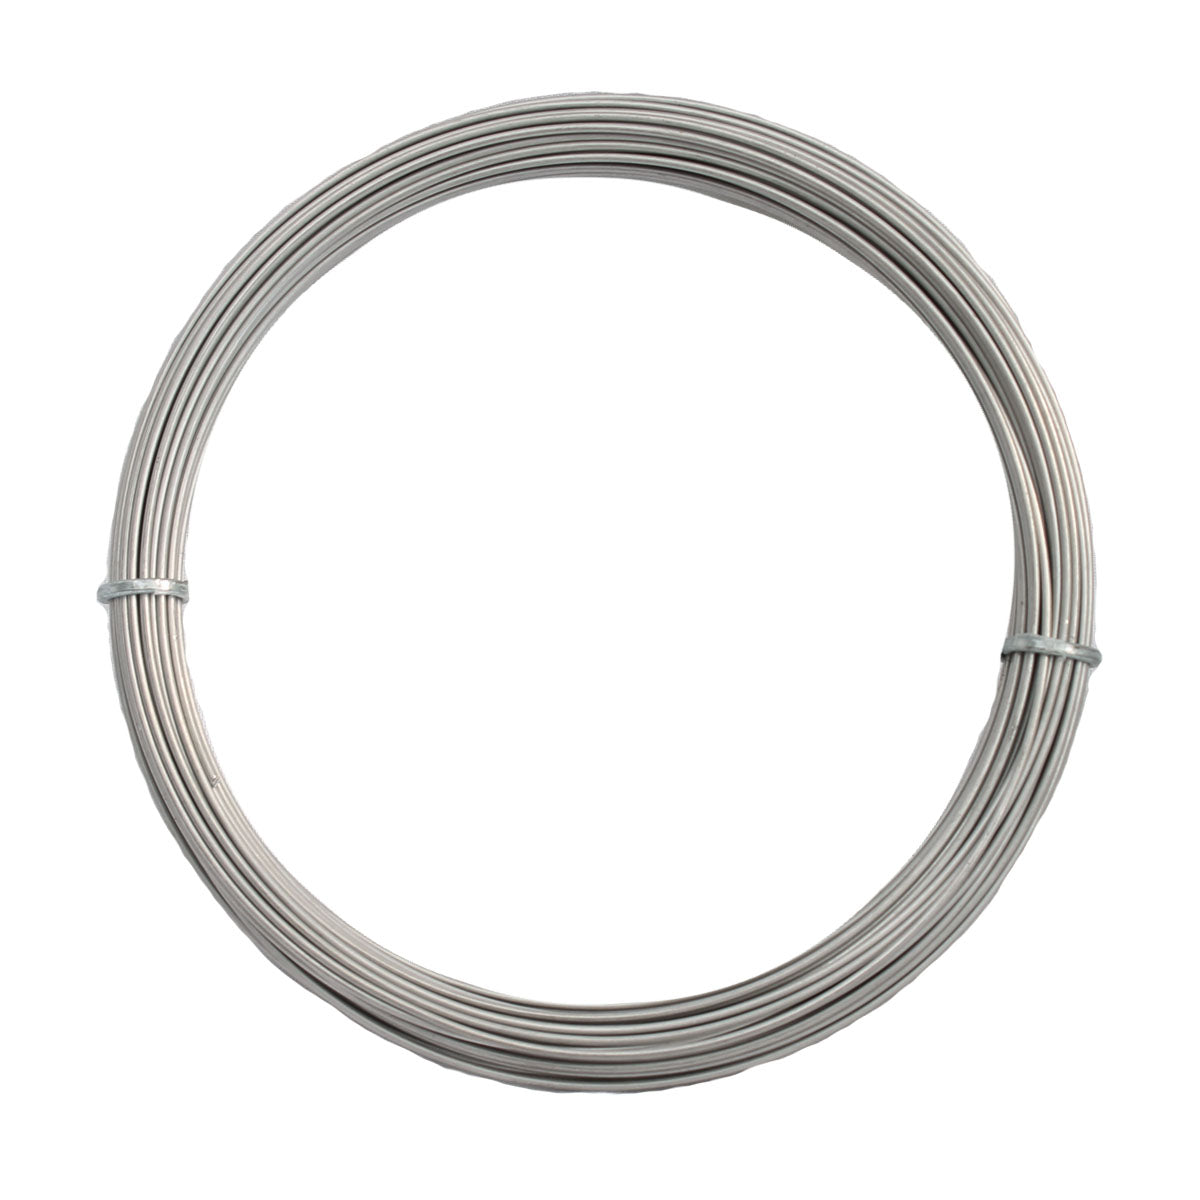 304 Grade Small Roll Stainless Steel Wire – ClampTite